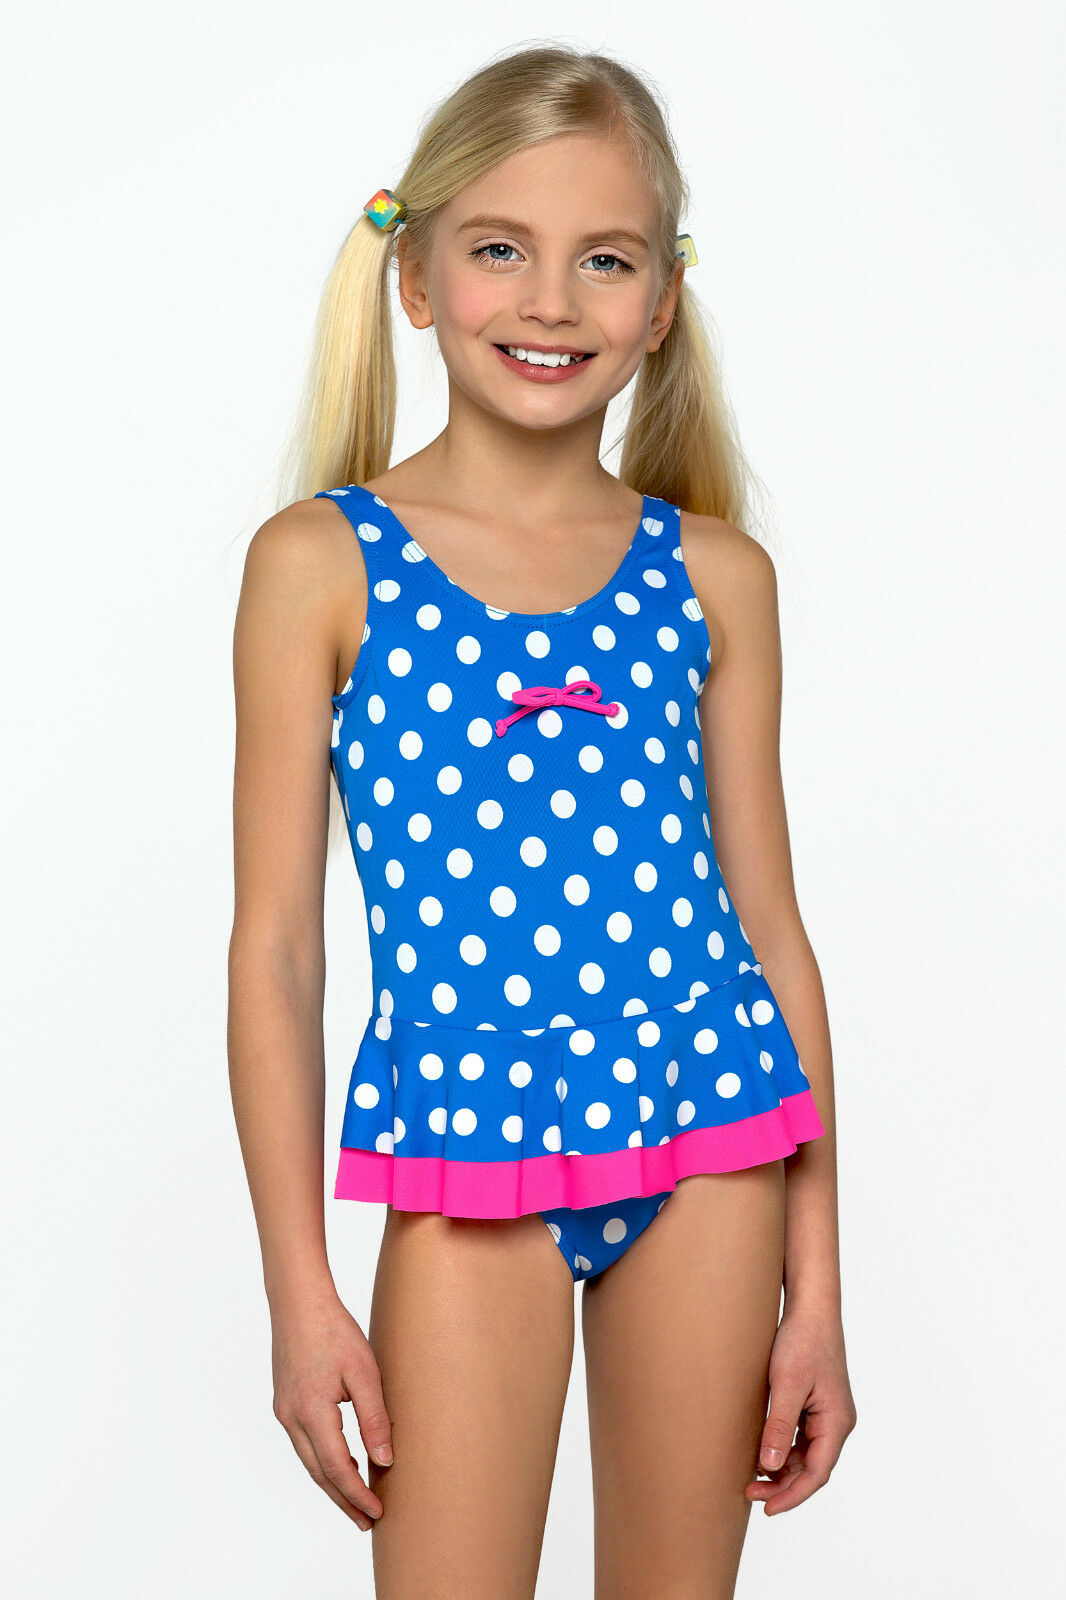 New Little Girls Sport Swimming Costume Swimwear Swimsuit ...